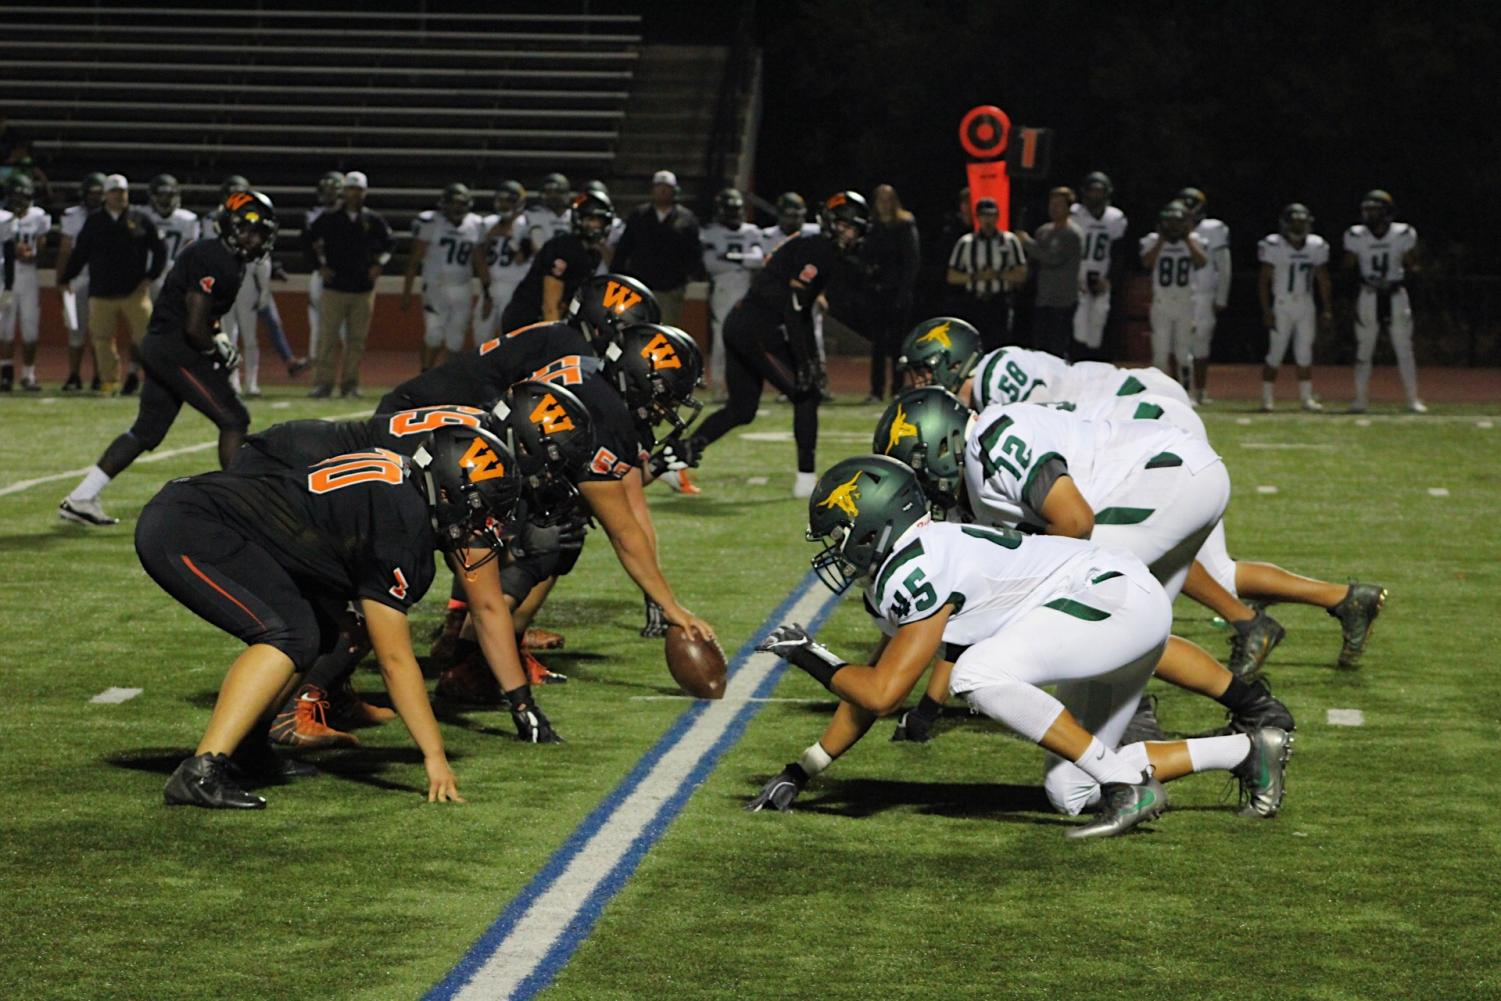 Woodside's line and Leigh's line face off before the snap.